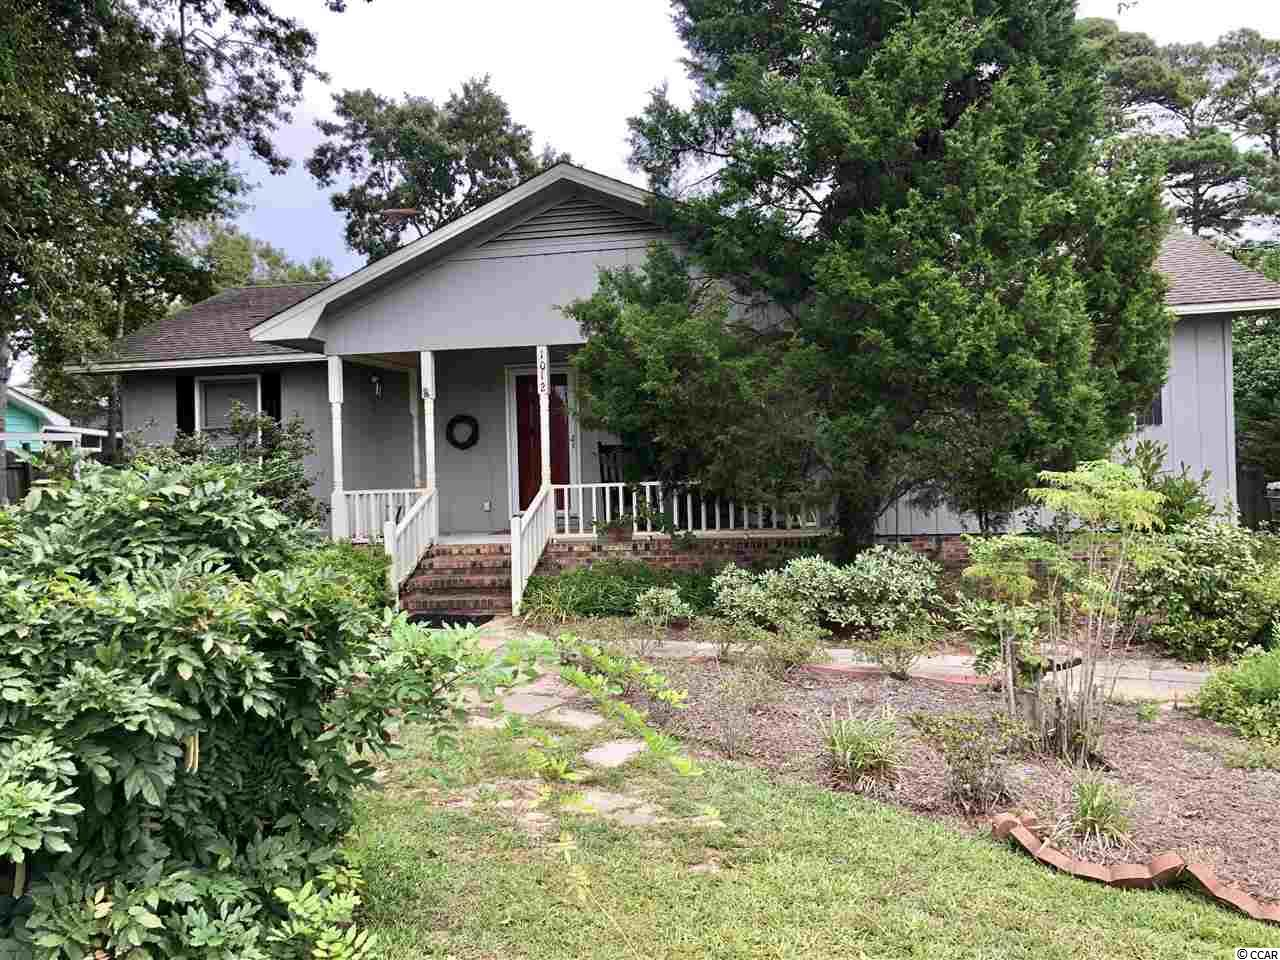 Adorable Beach House in the north end of Surfside Beach.  Close to Dogwood and Elizabeth Lakes.  Well cared for home is desirable neighborhood.  Kitchen has been updated.  Living room with dining area, Sun Porch, separate laundry room, split bedroom plan.  Lots of trees and lush landscaping,  Buyers will love this home.